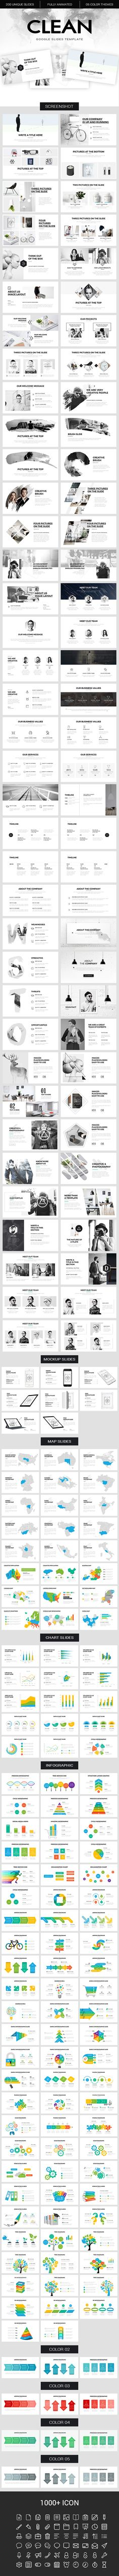 Clean Google Slides Template. Download here: http://graphicriver.net/item/clean-google-slides-template/16193728?ref=ksioks